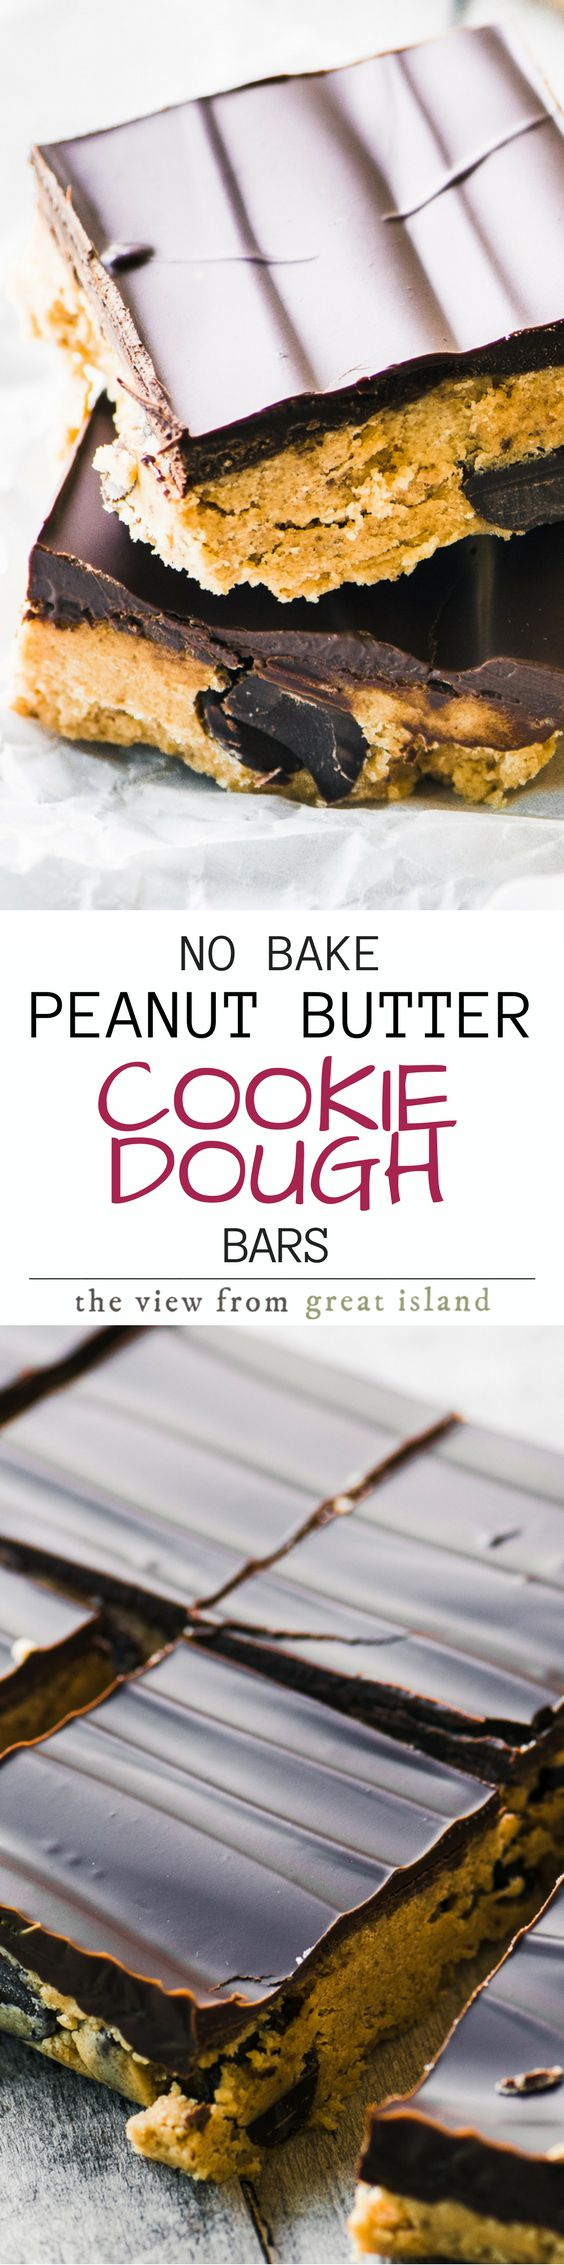 No Bake Peanut Butter Chocolate Chip Cookie Dough Bars ~ these easy bars are a cookie dough lover's dream come true. There are no eggs in the recipe, and the flour is microwaved to kill any potential bacteria. | dessert | blondies | brownies | cookies |